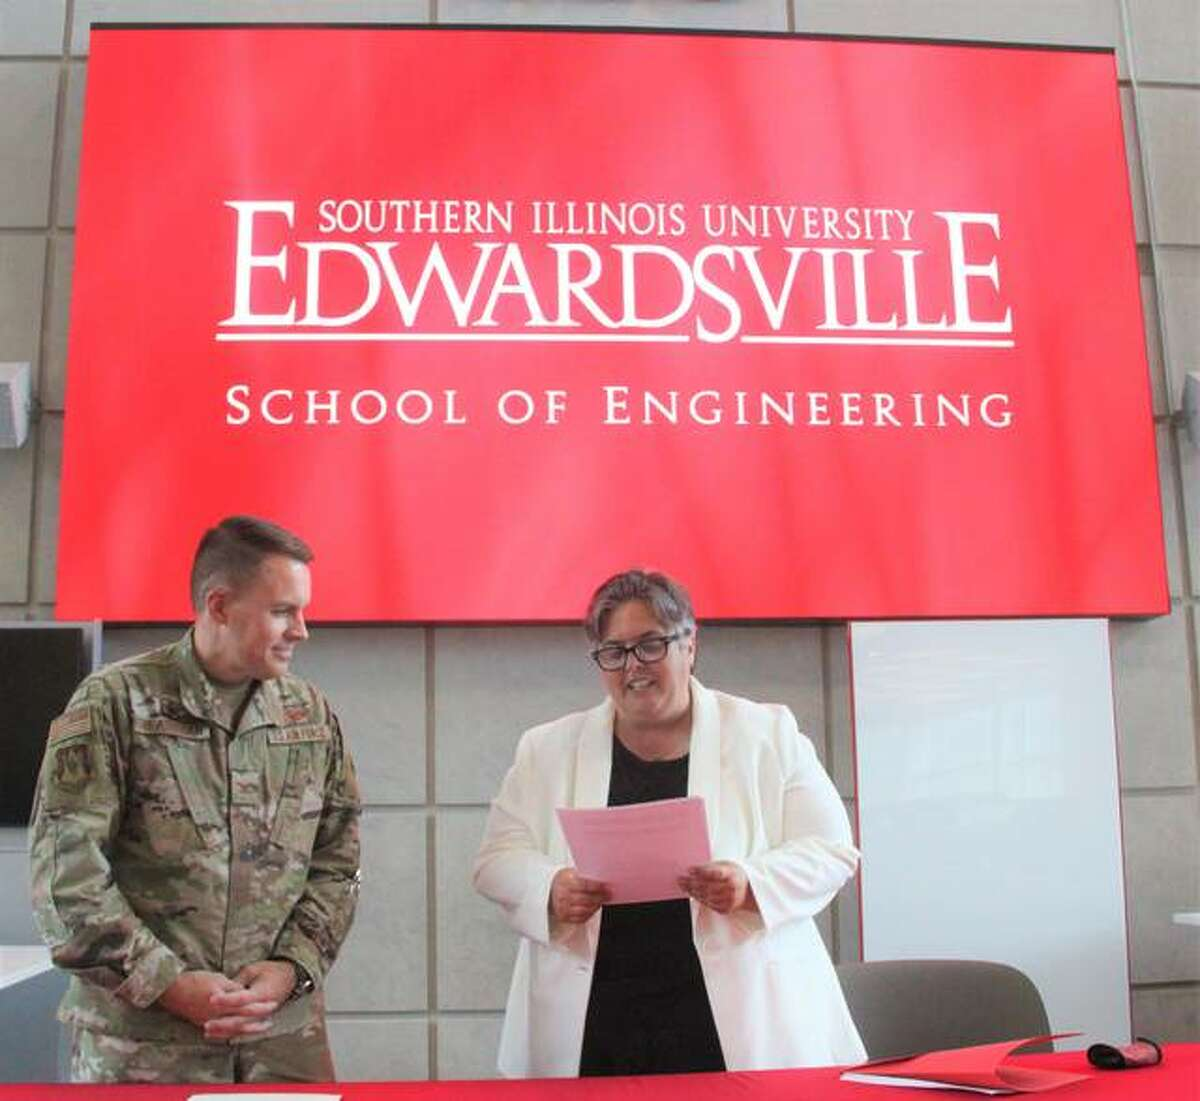 """Col. J. Scot Heathman, commander of the 375th Air Mobility Wing at Scott Air Force Base in Belleville, and .SIUE Provost and Vice Chancellor for Academic Affairs Denise Cobb talk before signing a three-year educational agreement between the university and the unit's """"innovation hub"""" called Elevate."""